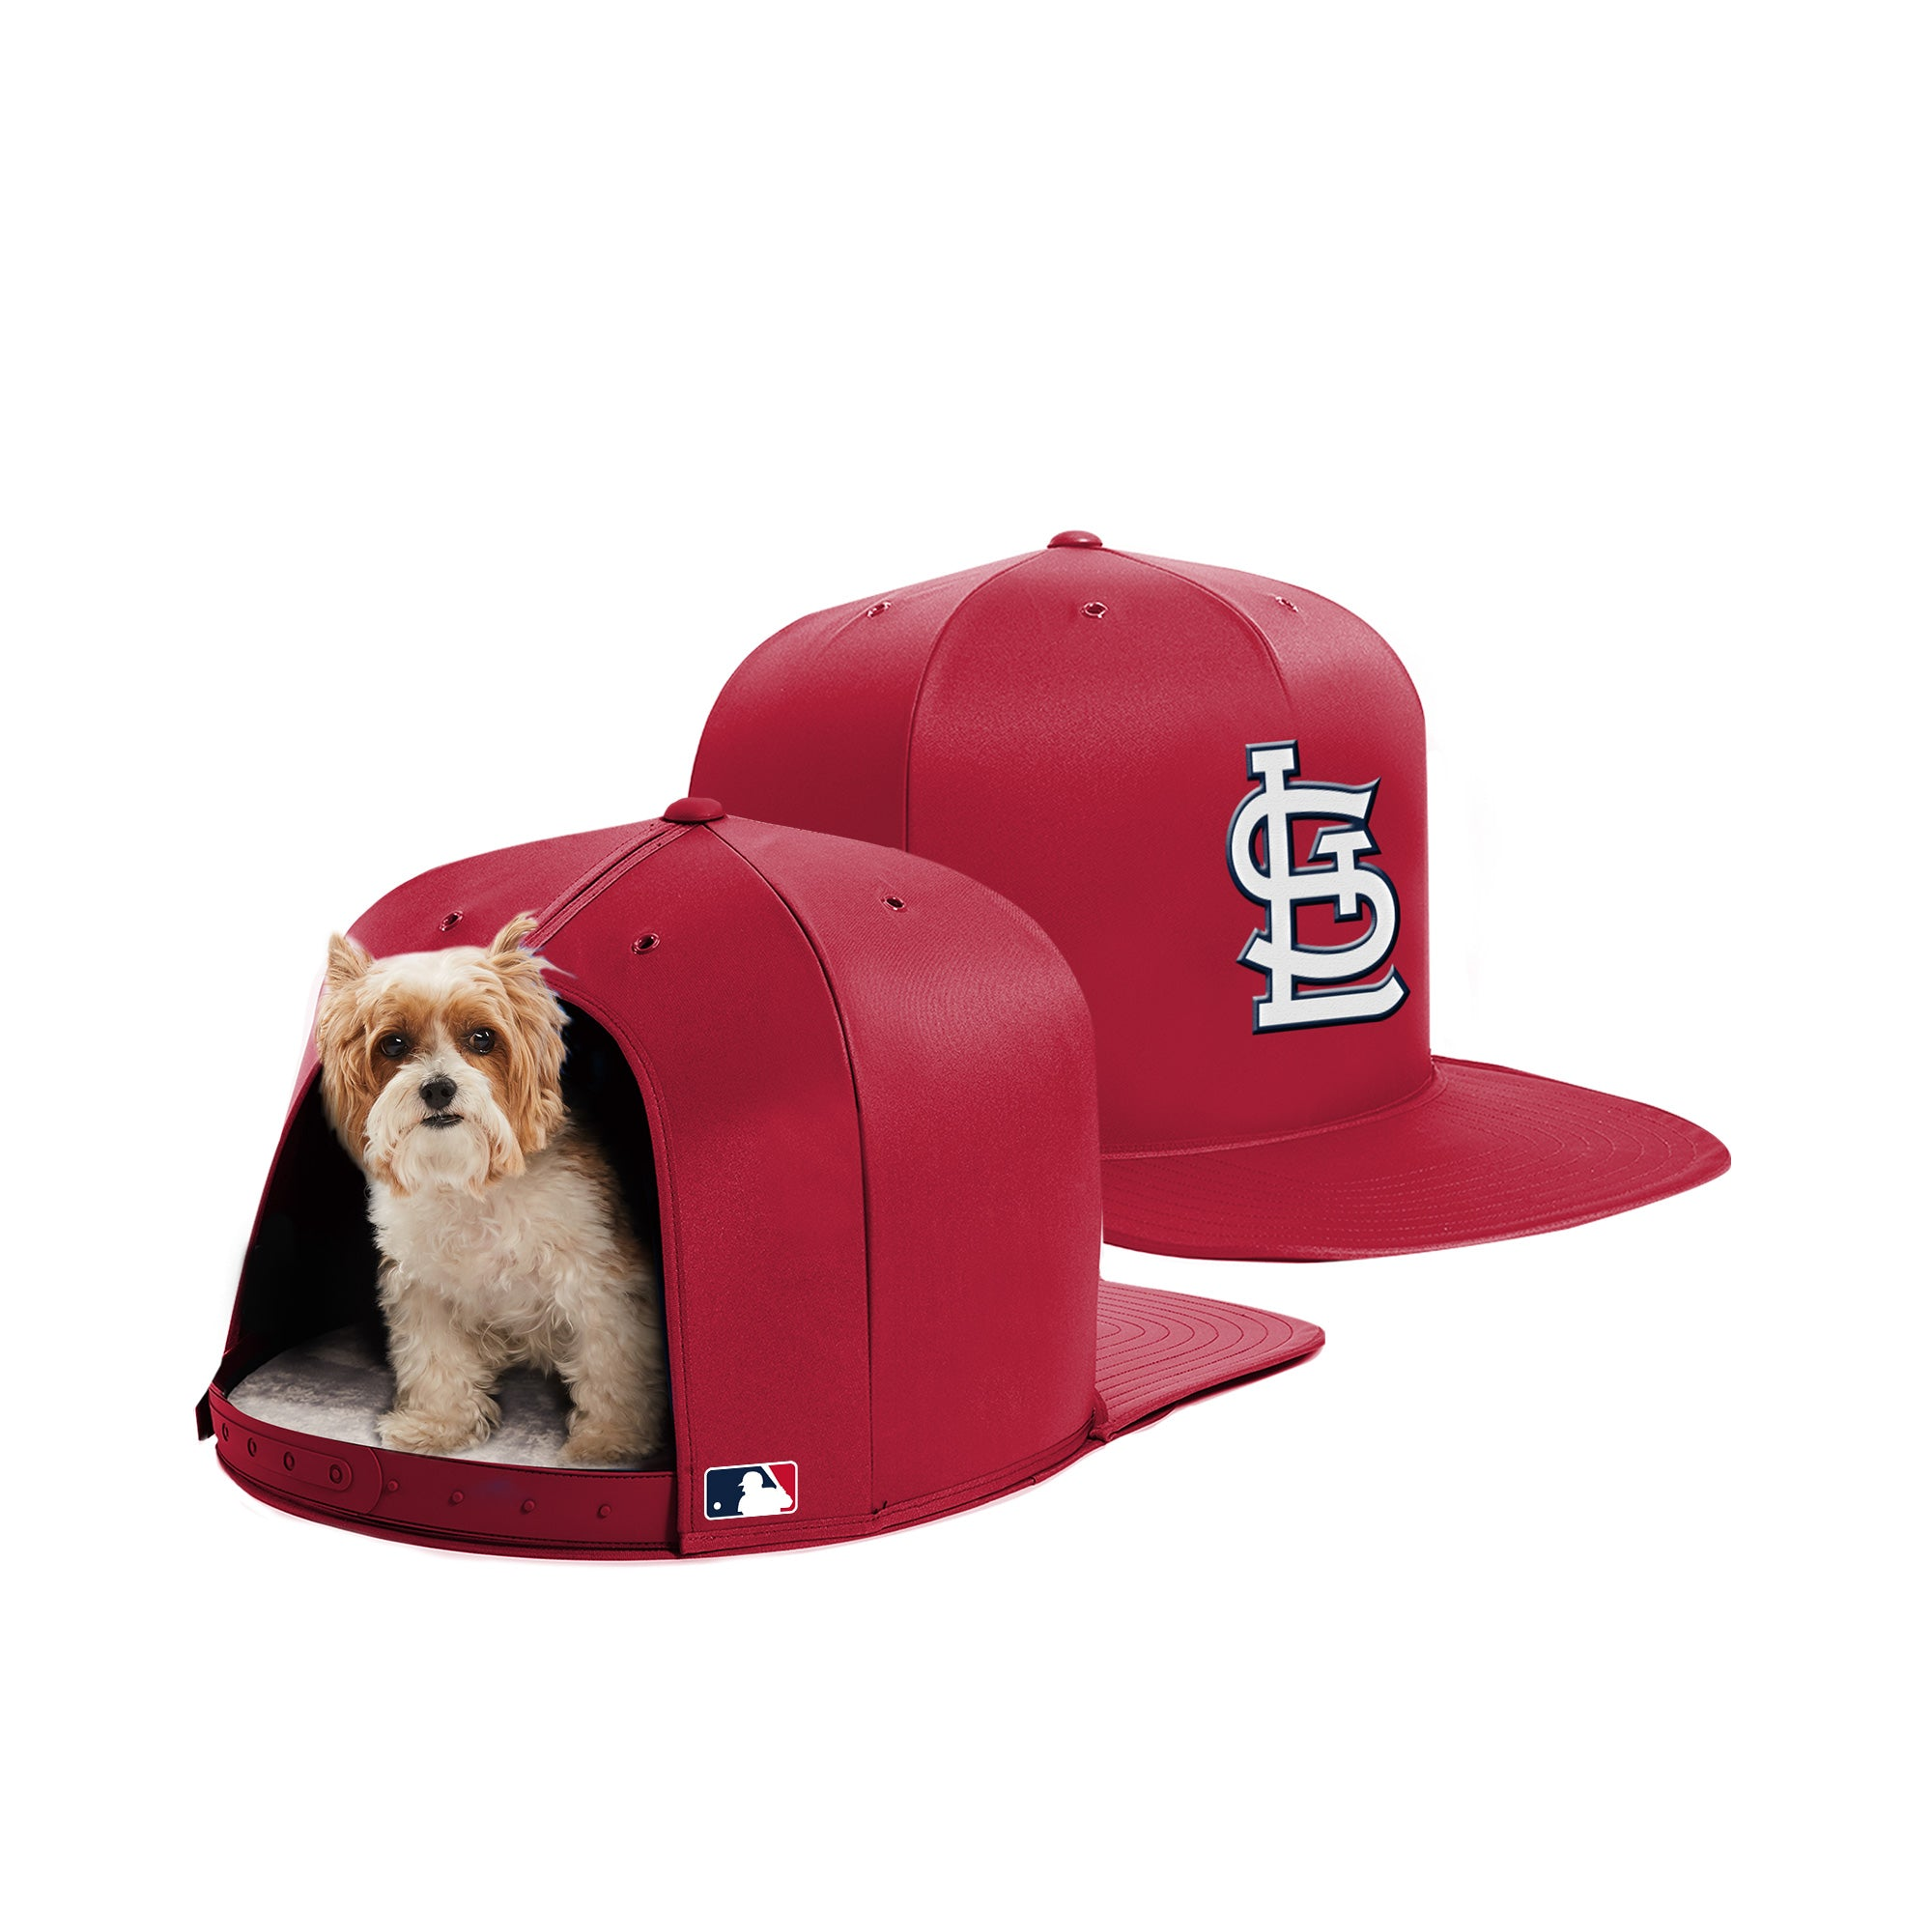 Nap Cap - St. Louis Cardinals - Pet Bed